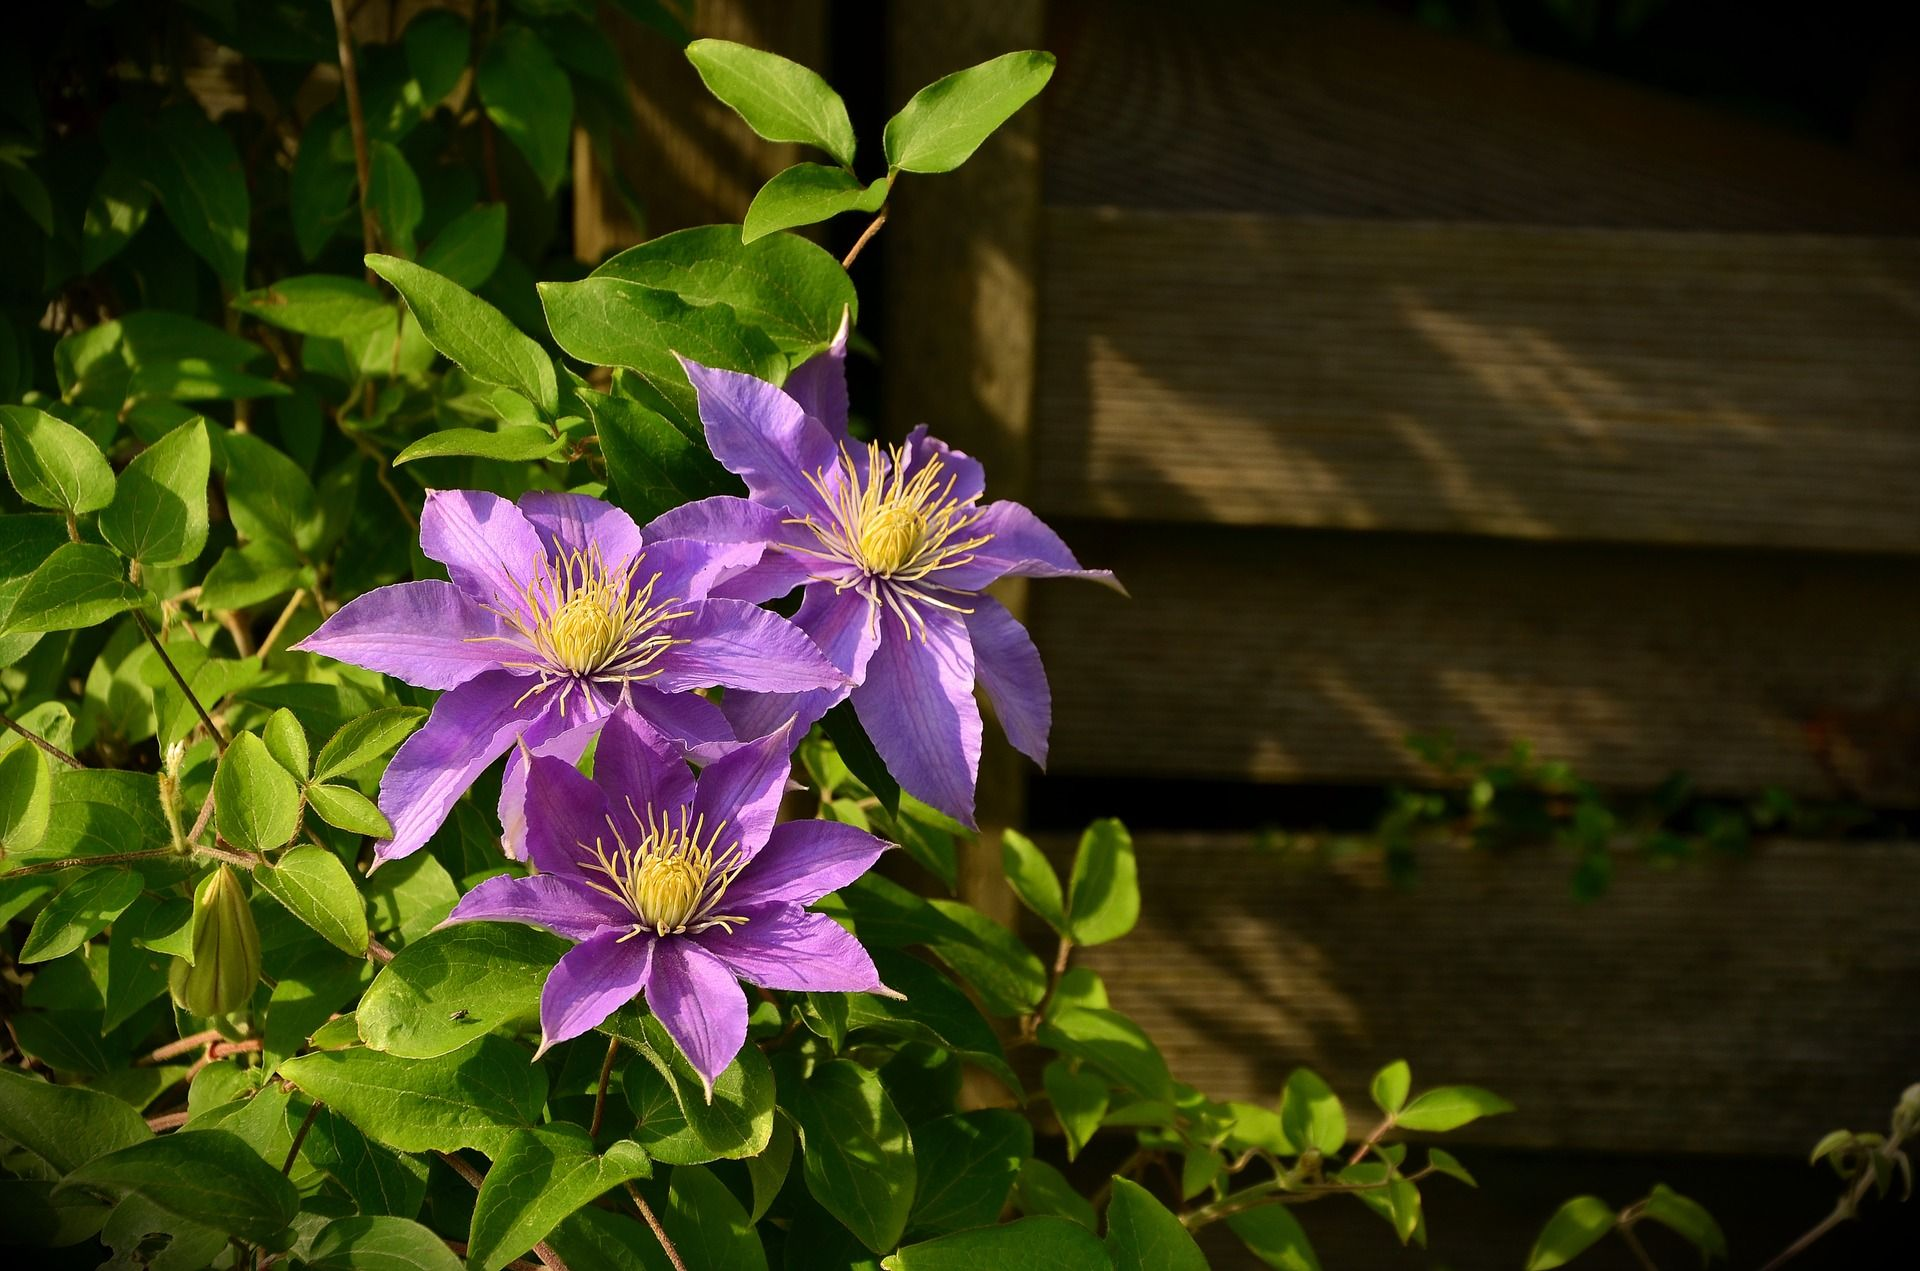 Clematis Blume in Lila